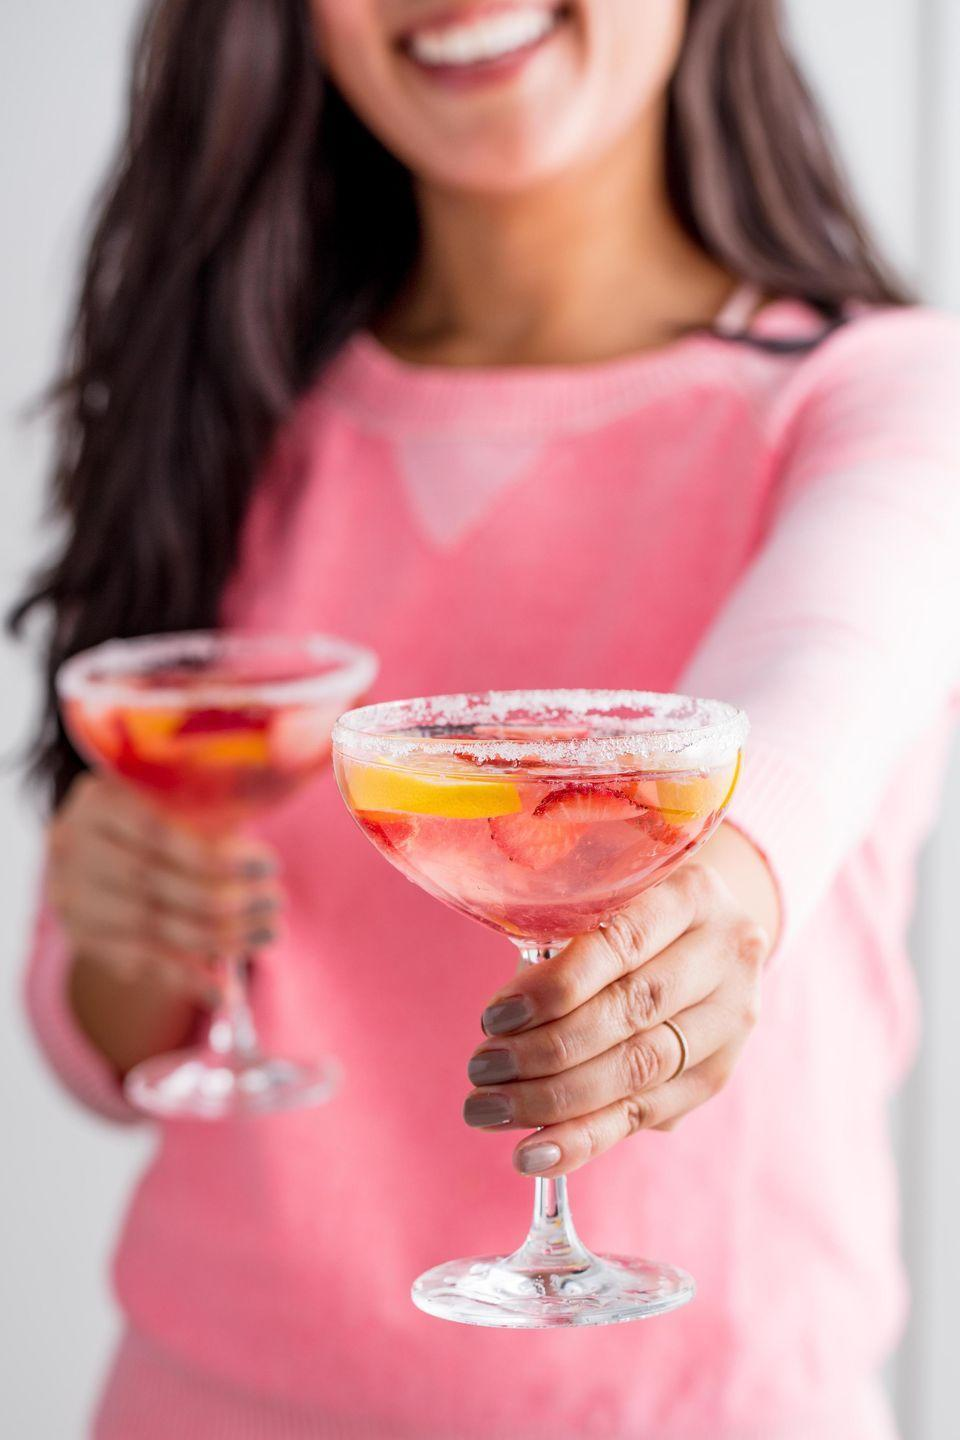 """<p>Moscato, lemonade, and vodka is a winning (and sweet) combo.</p><p>Get the recipe from <a href=""""https://www.delish.com/cooking/recipe-ideas/recipes/a54556/giggle-juice-recipe/"""" rel=""""nofollow noopener"""" target=""""_blank"""" data-ylk=""""slk:Delish"""" class=""""link rapid-noclick-resp"""">Delish</a>.</p>"""